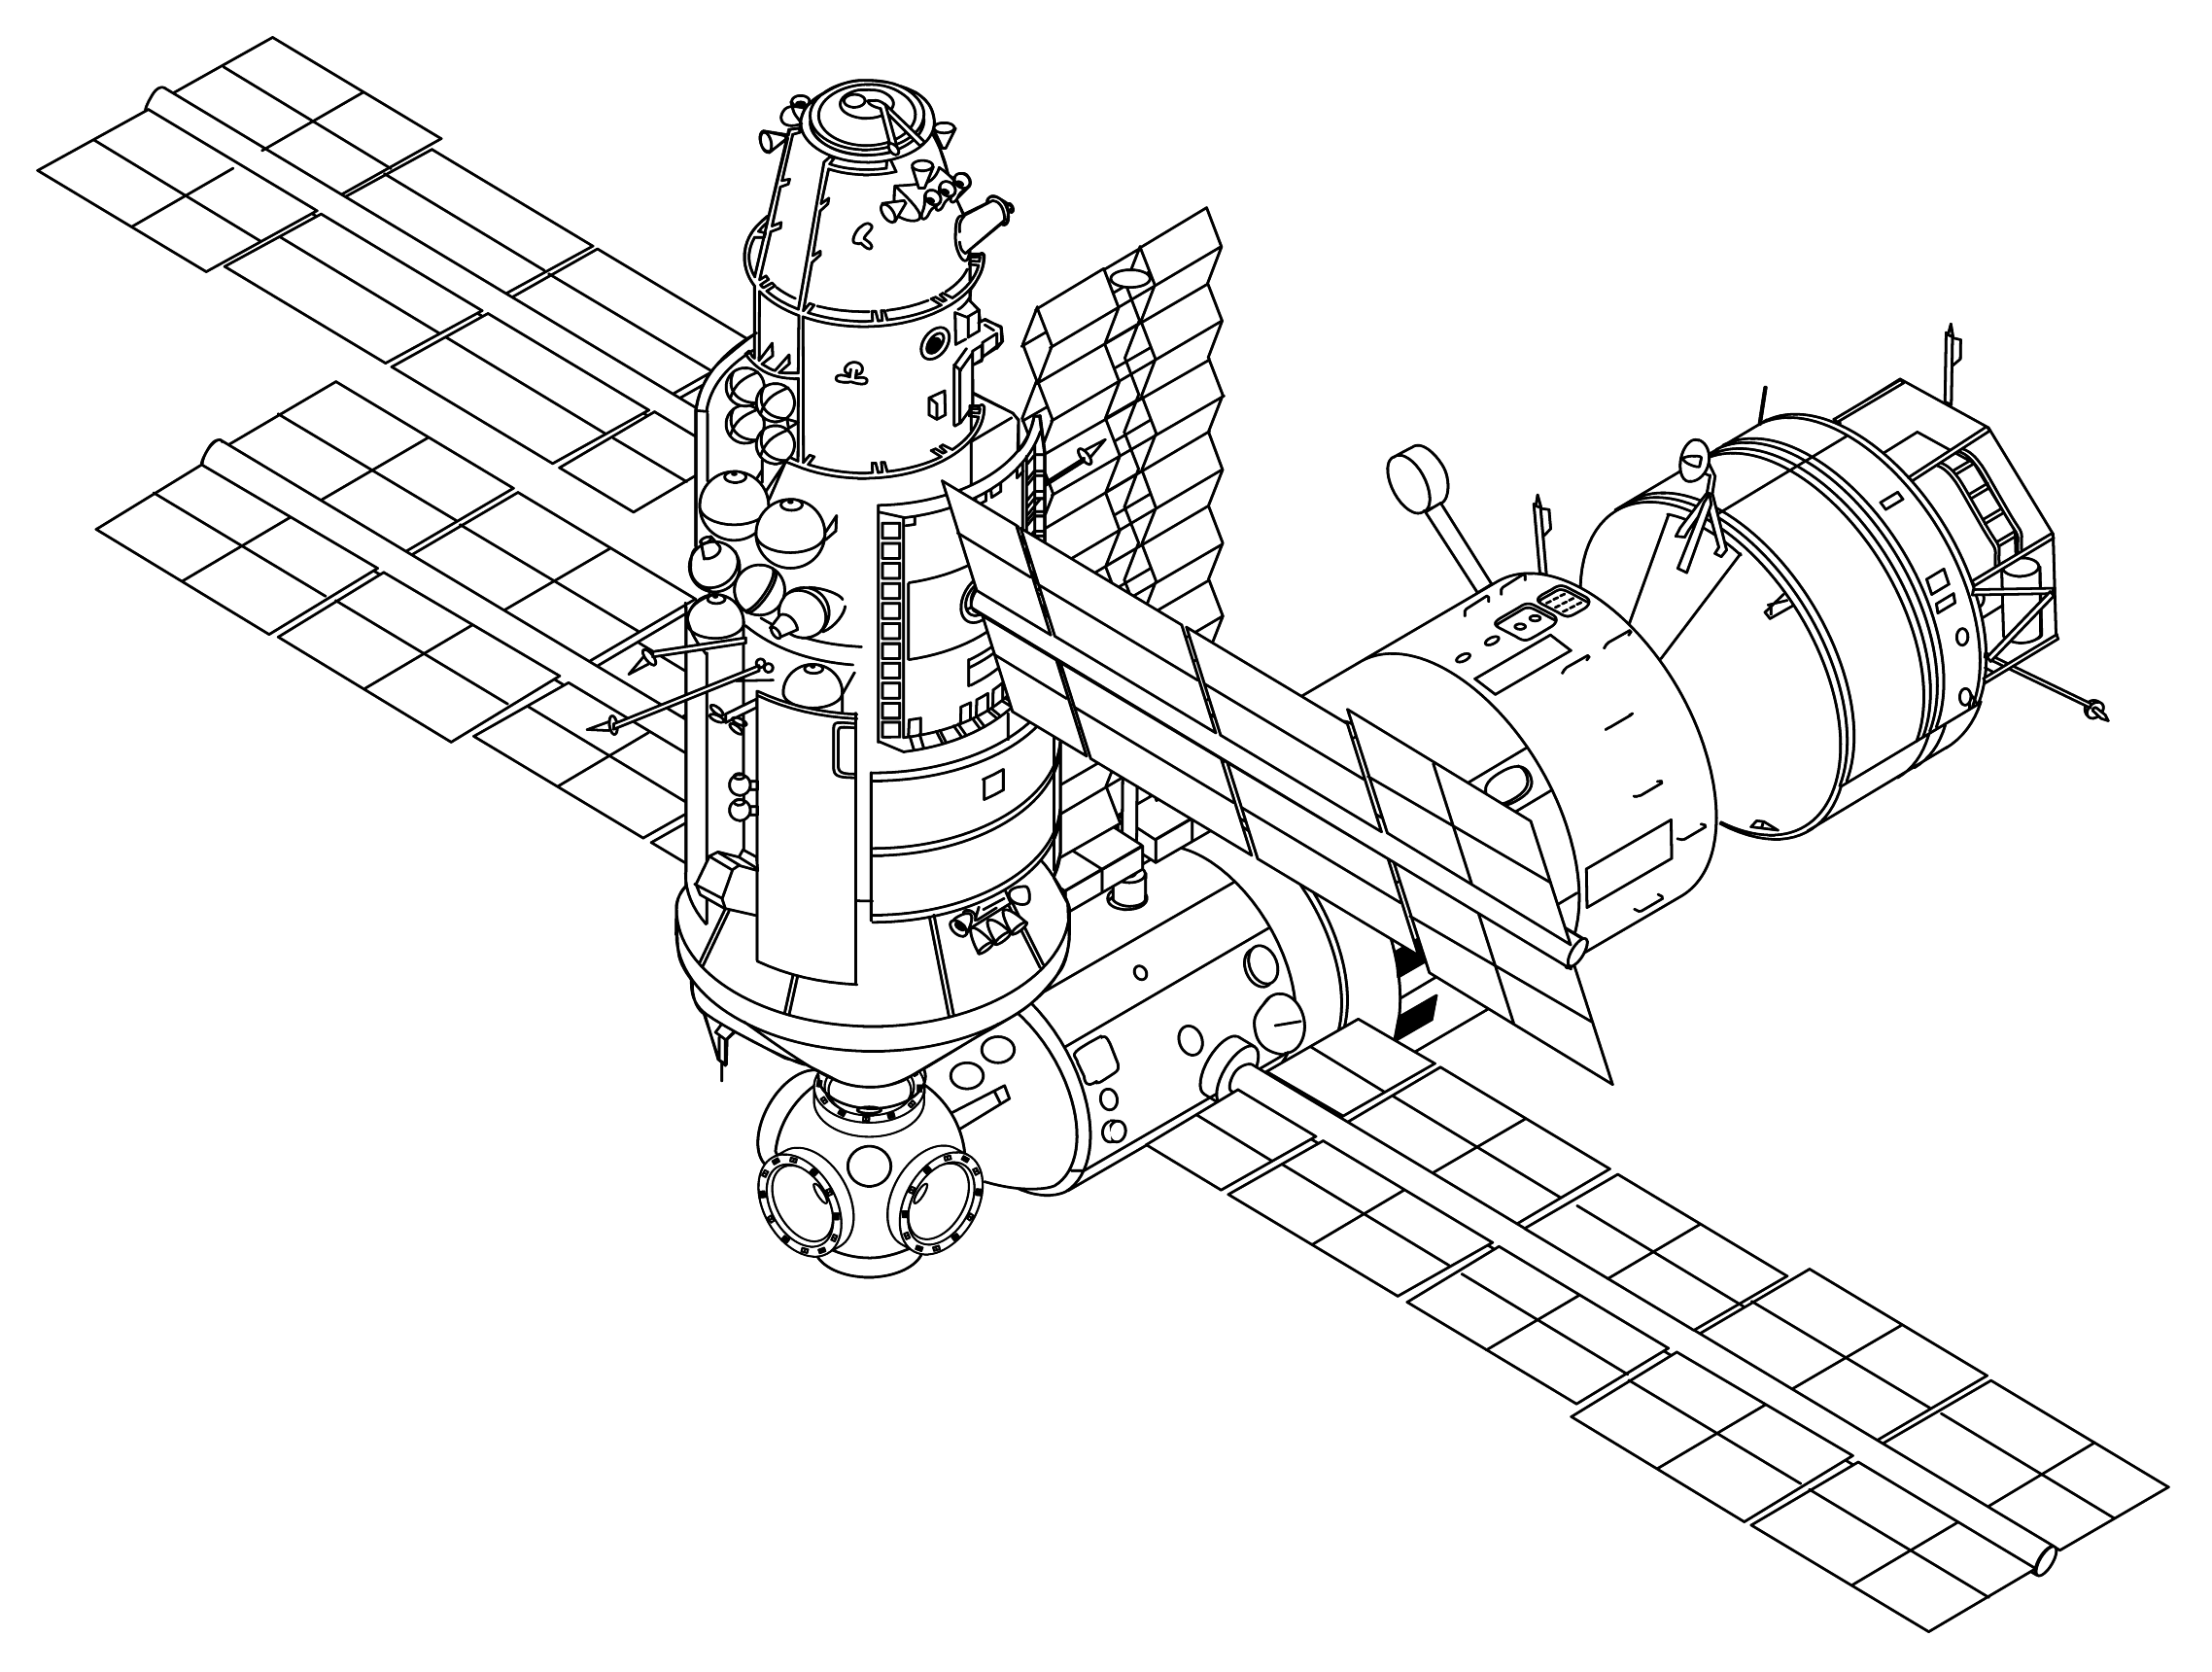 2276x1720 Filemir 1989 Configuration Drawing.png